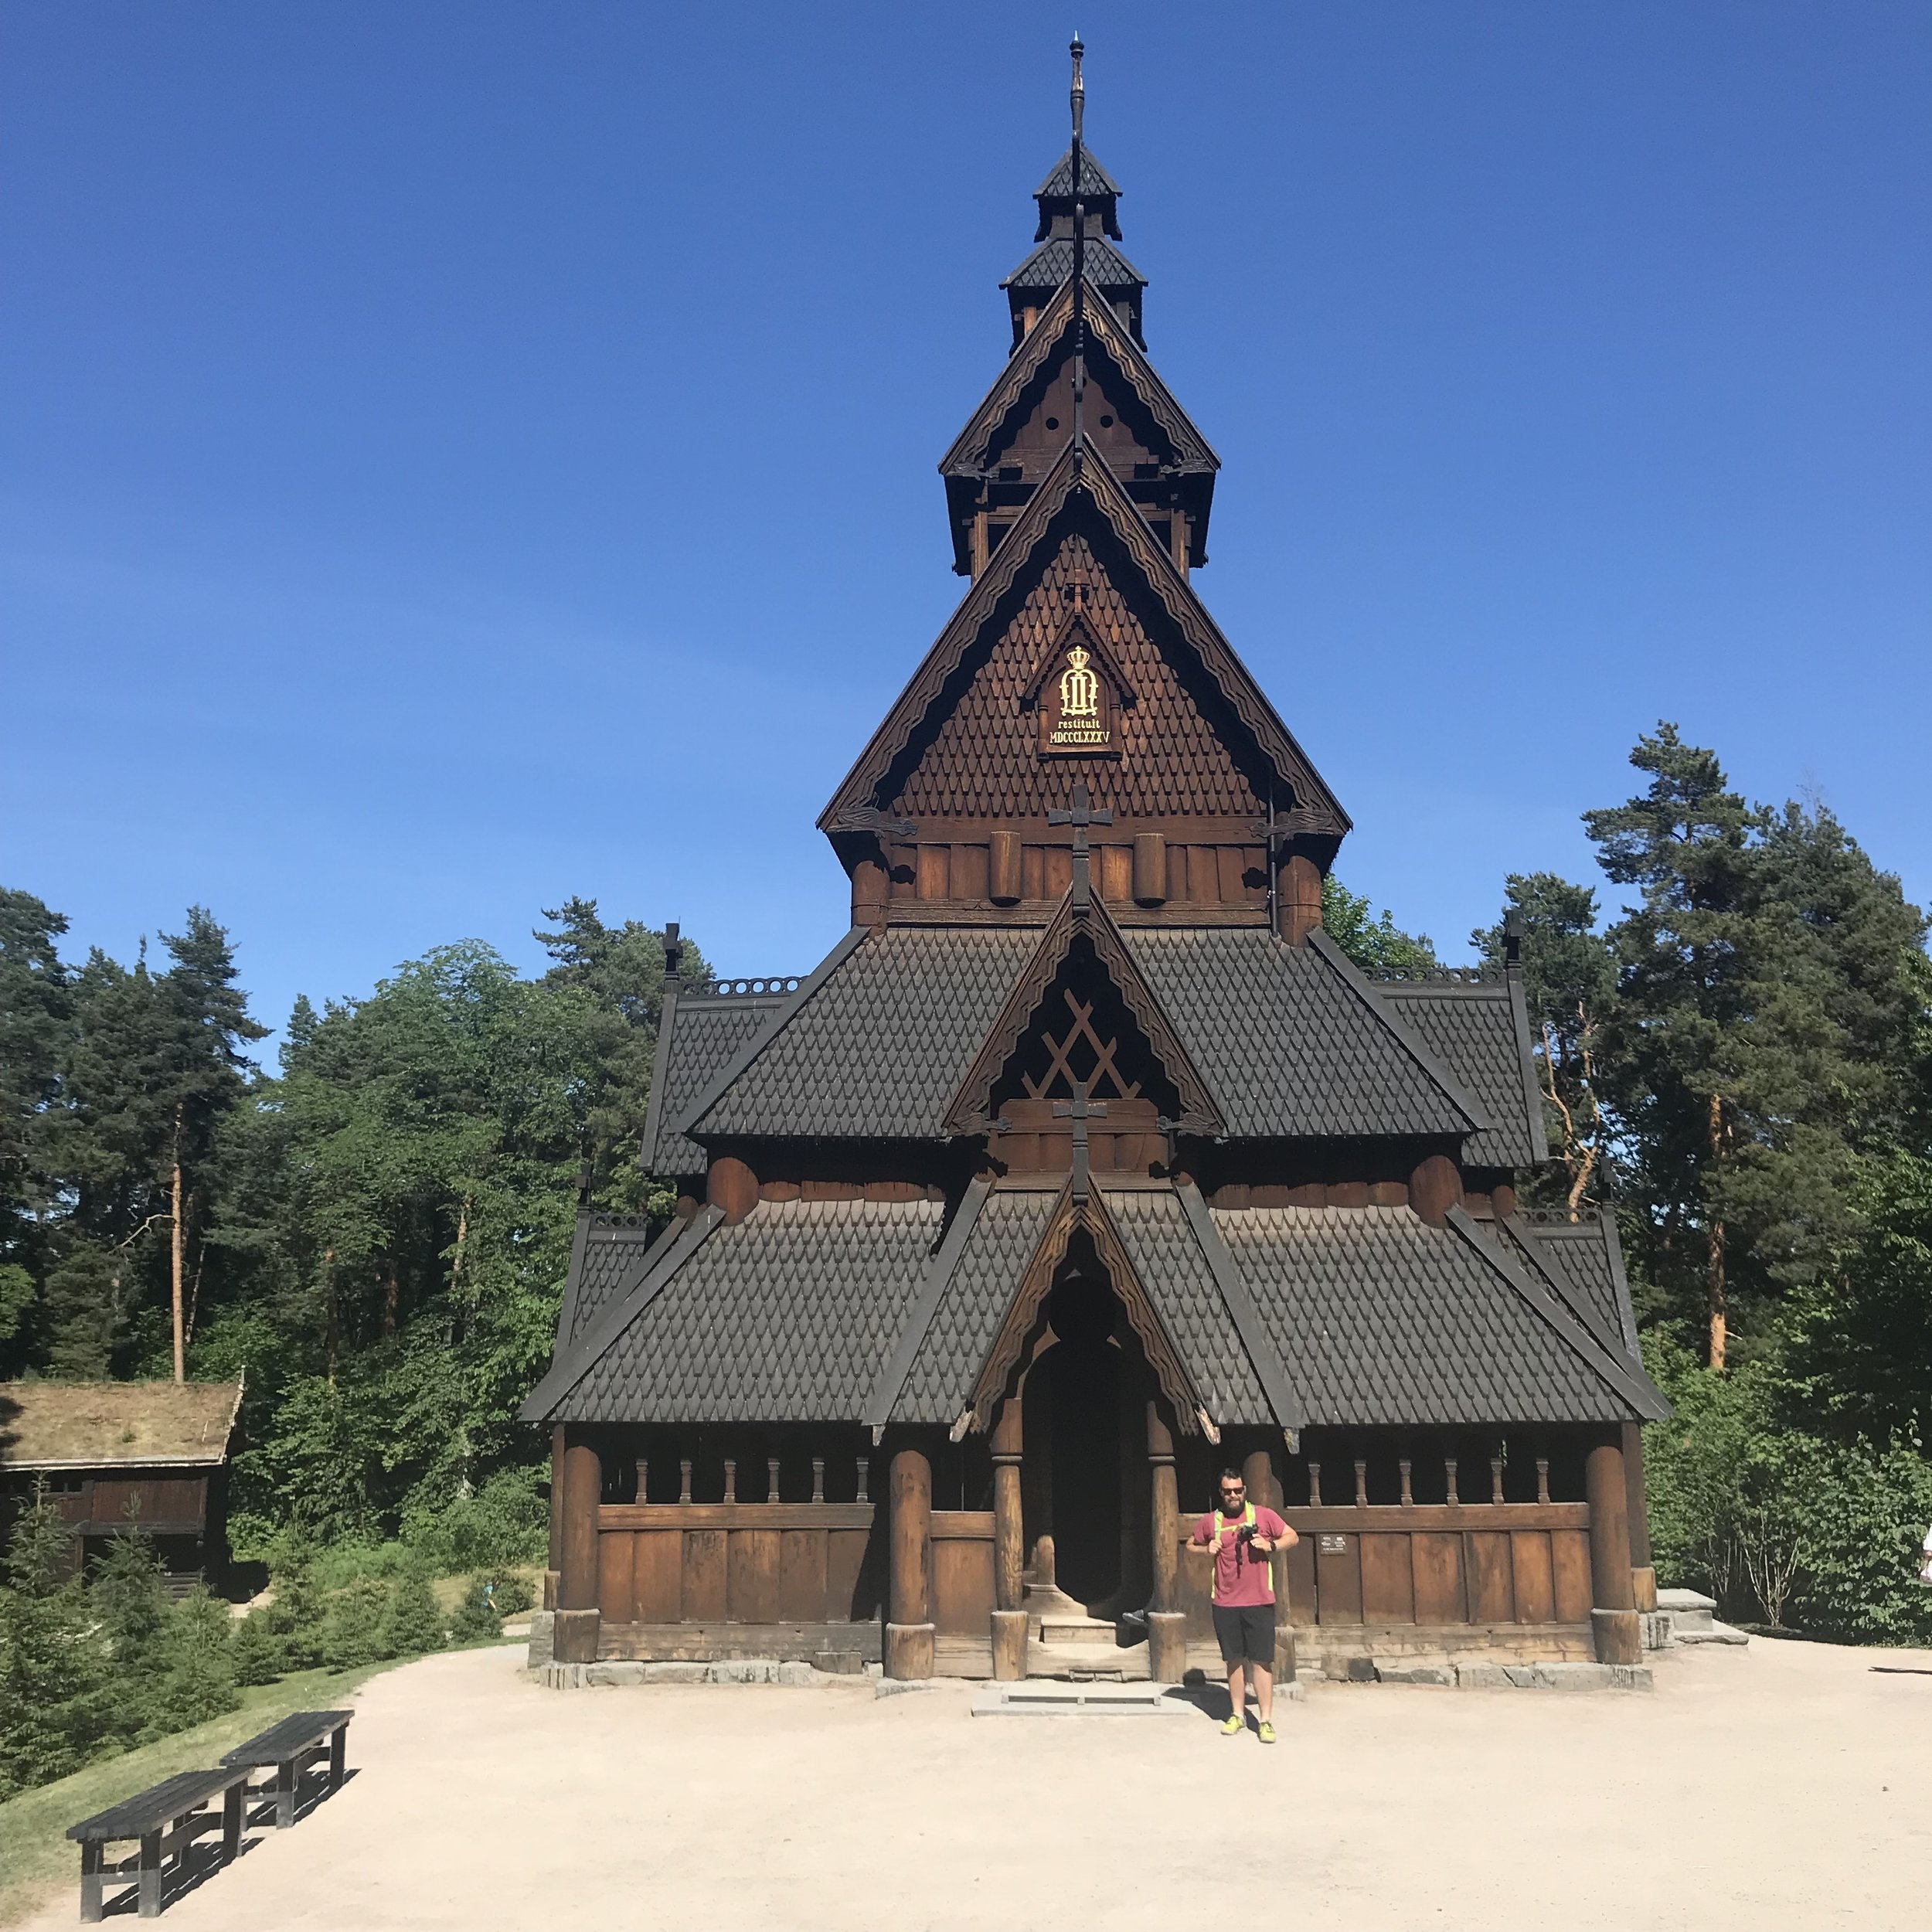 Checking out a Stave Church at the Norwegian Museum of Cultural History.